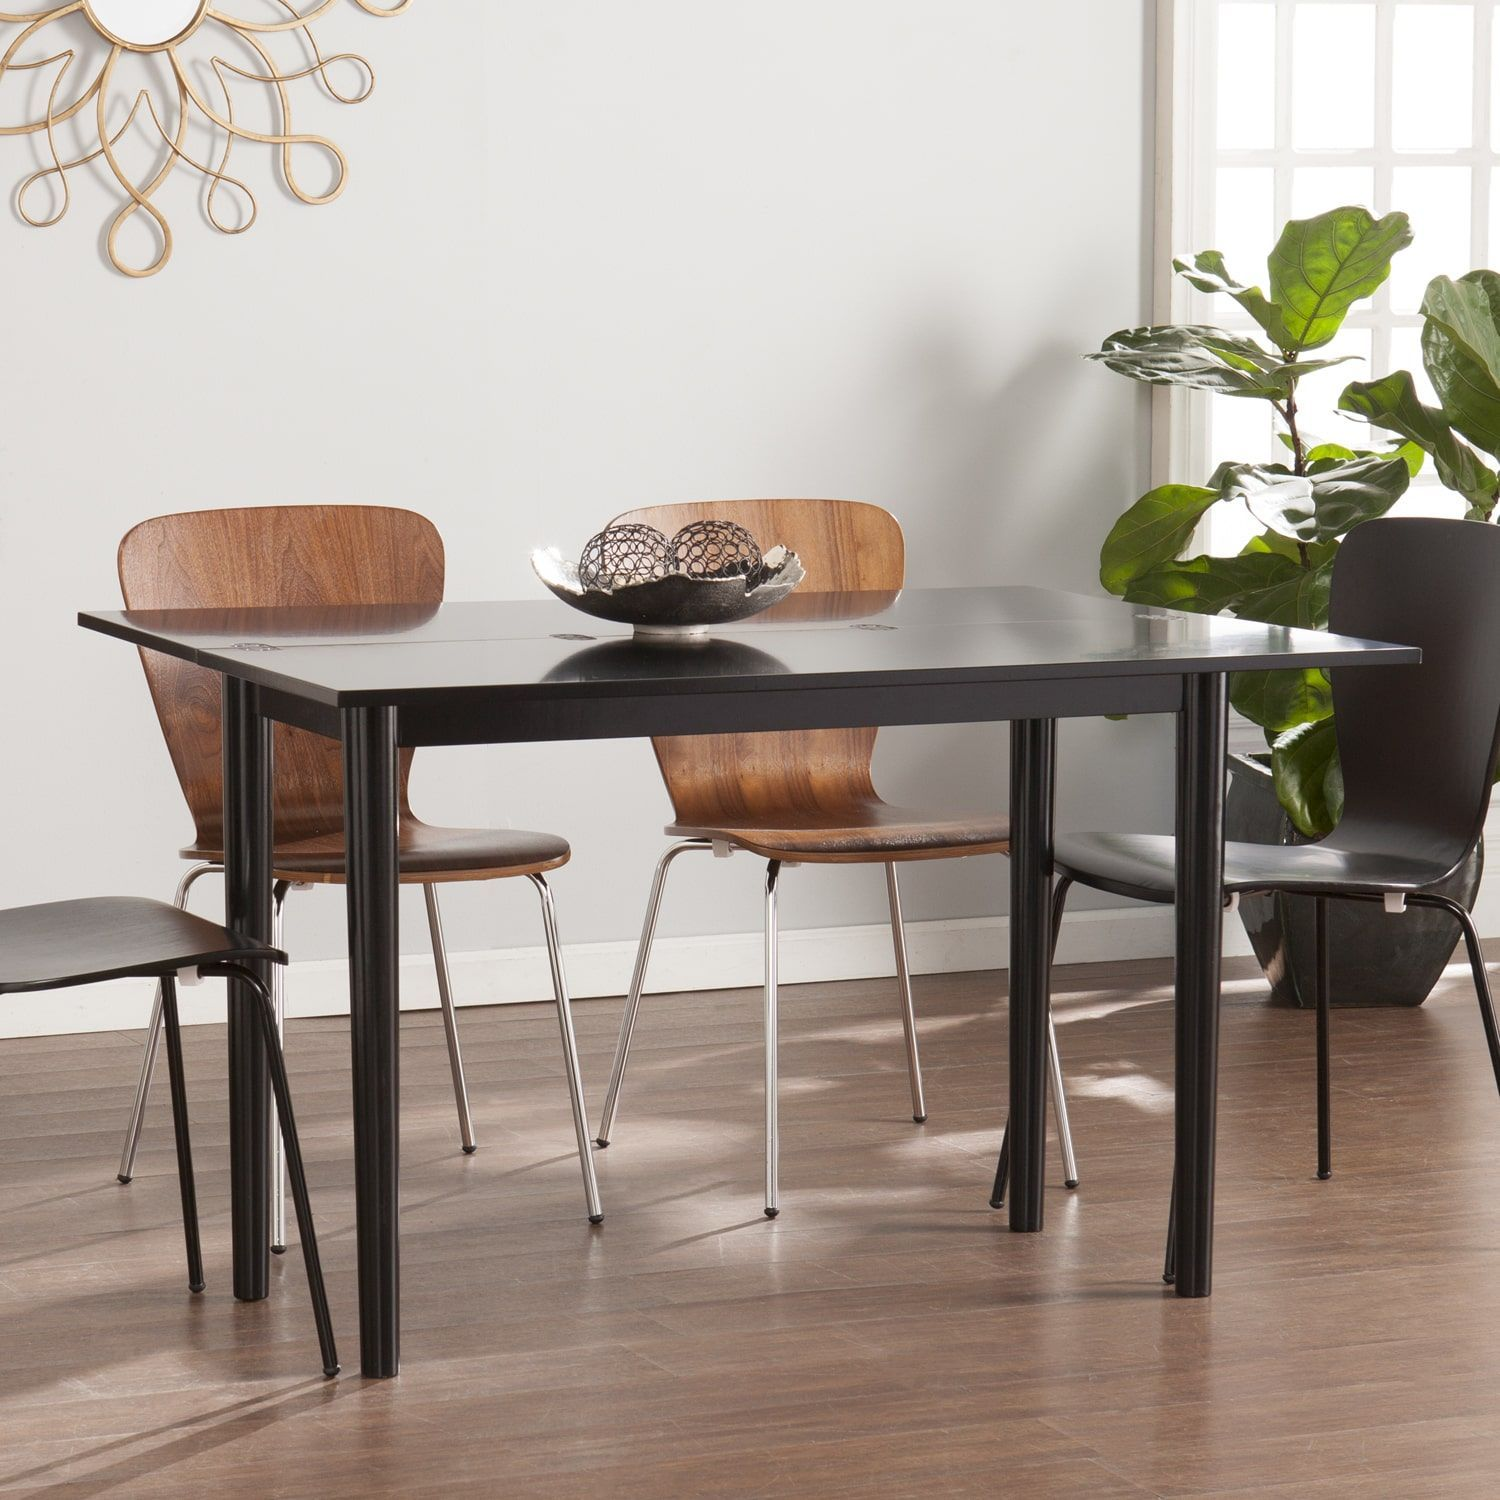 Harper blvd convertible console to dining table w 2pc black 2pc harper blvd convertible console to dining table w 2pc 2pc walnut chairs geotapseo Images